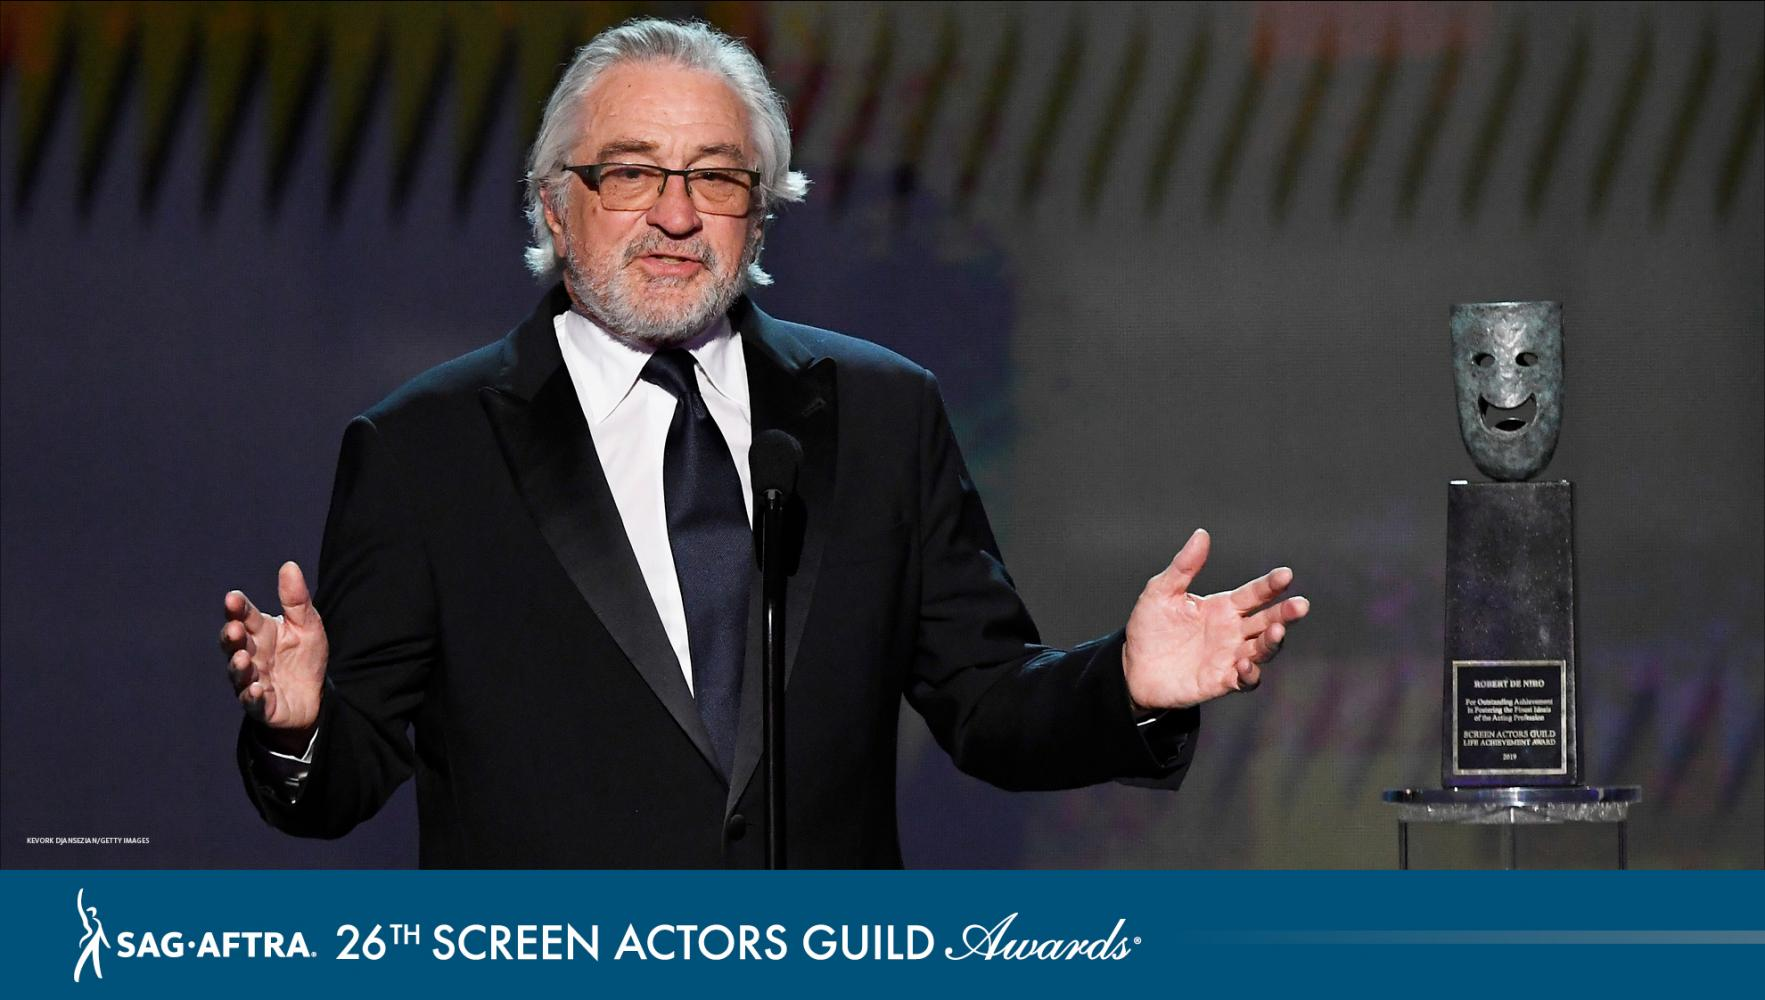 De Niro with his award on stage